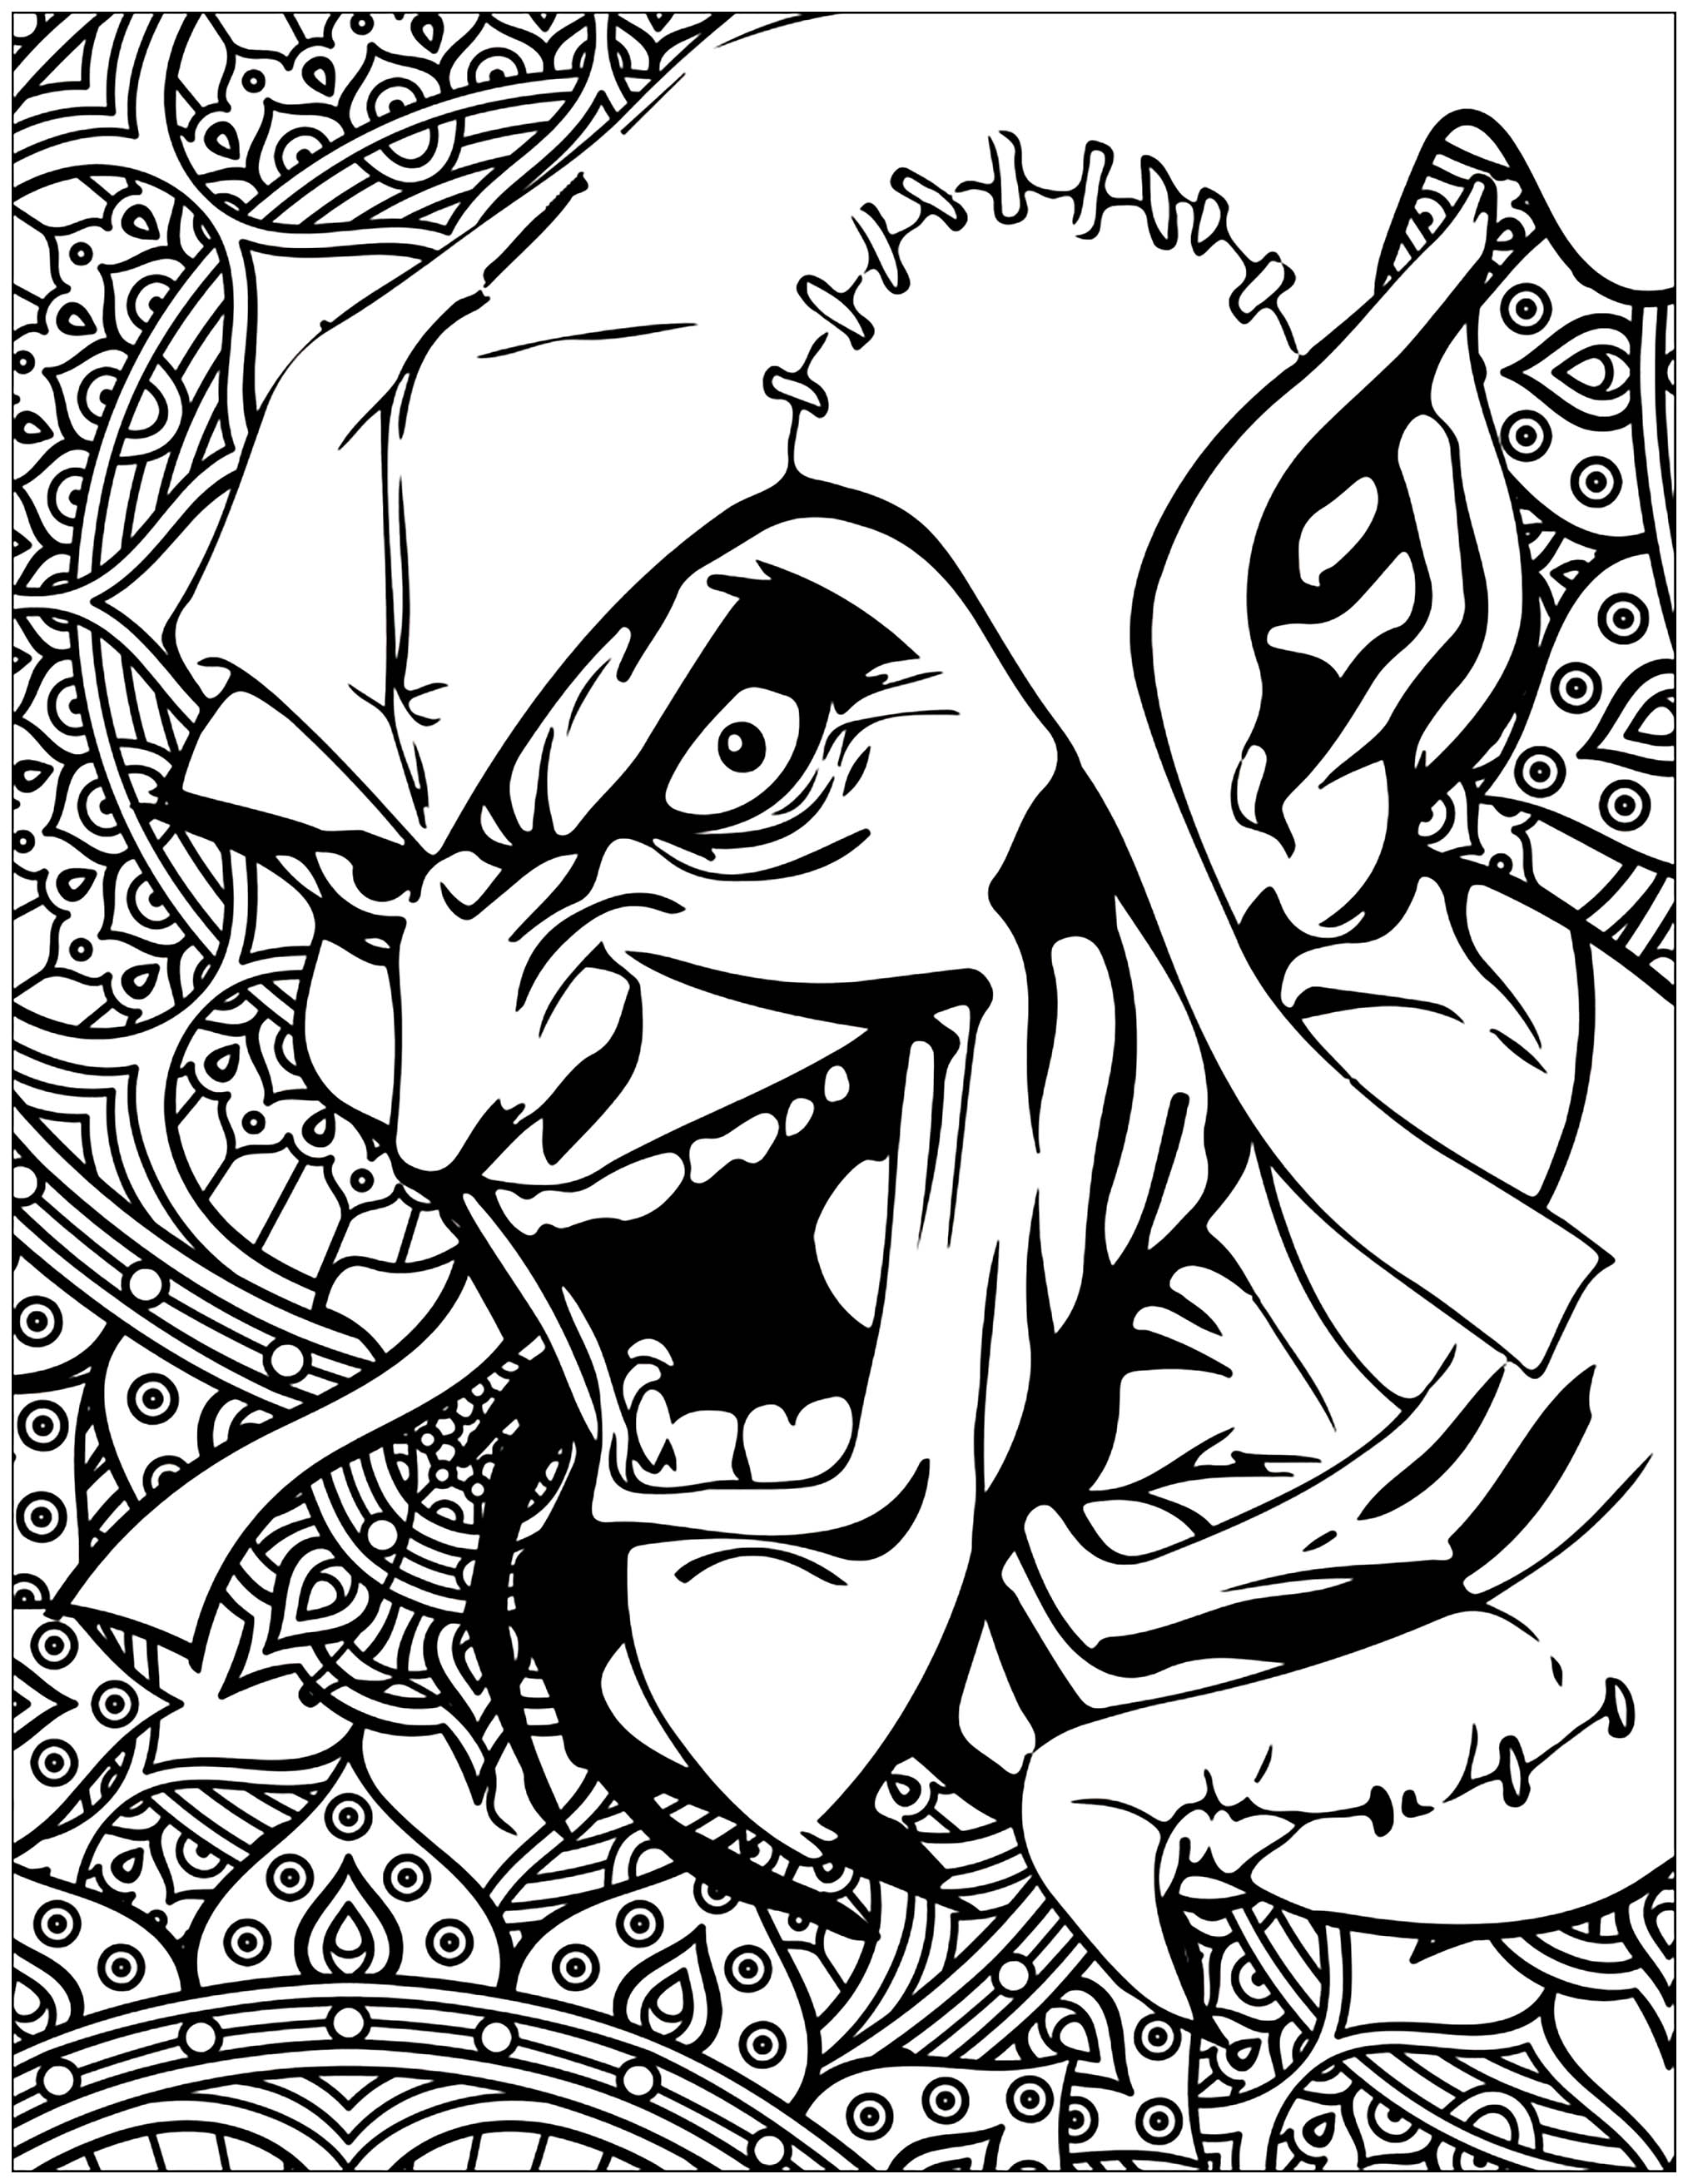 Marvel villains Green Goblin - Books Adult Coloring Pages